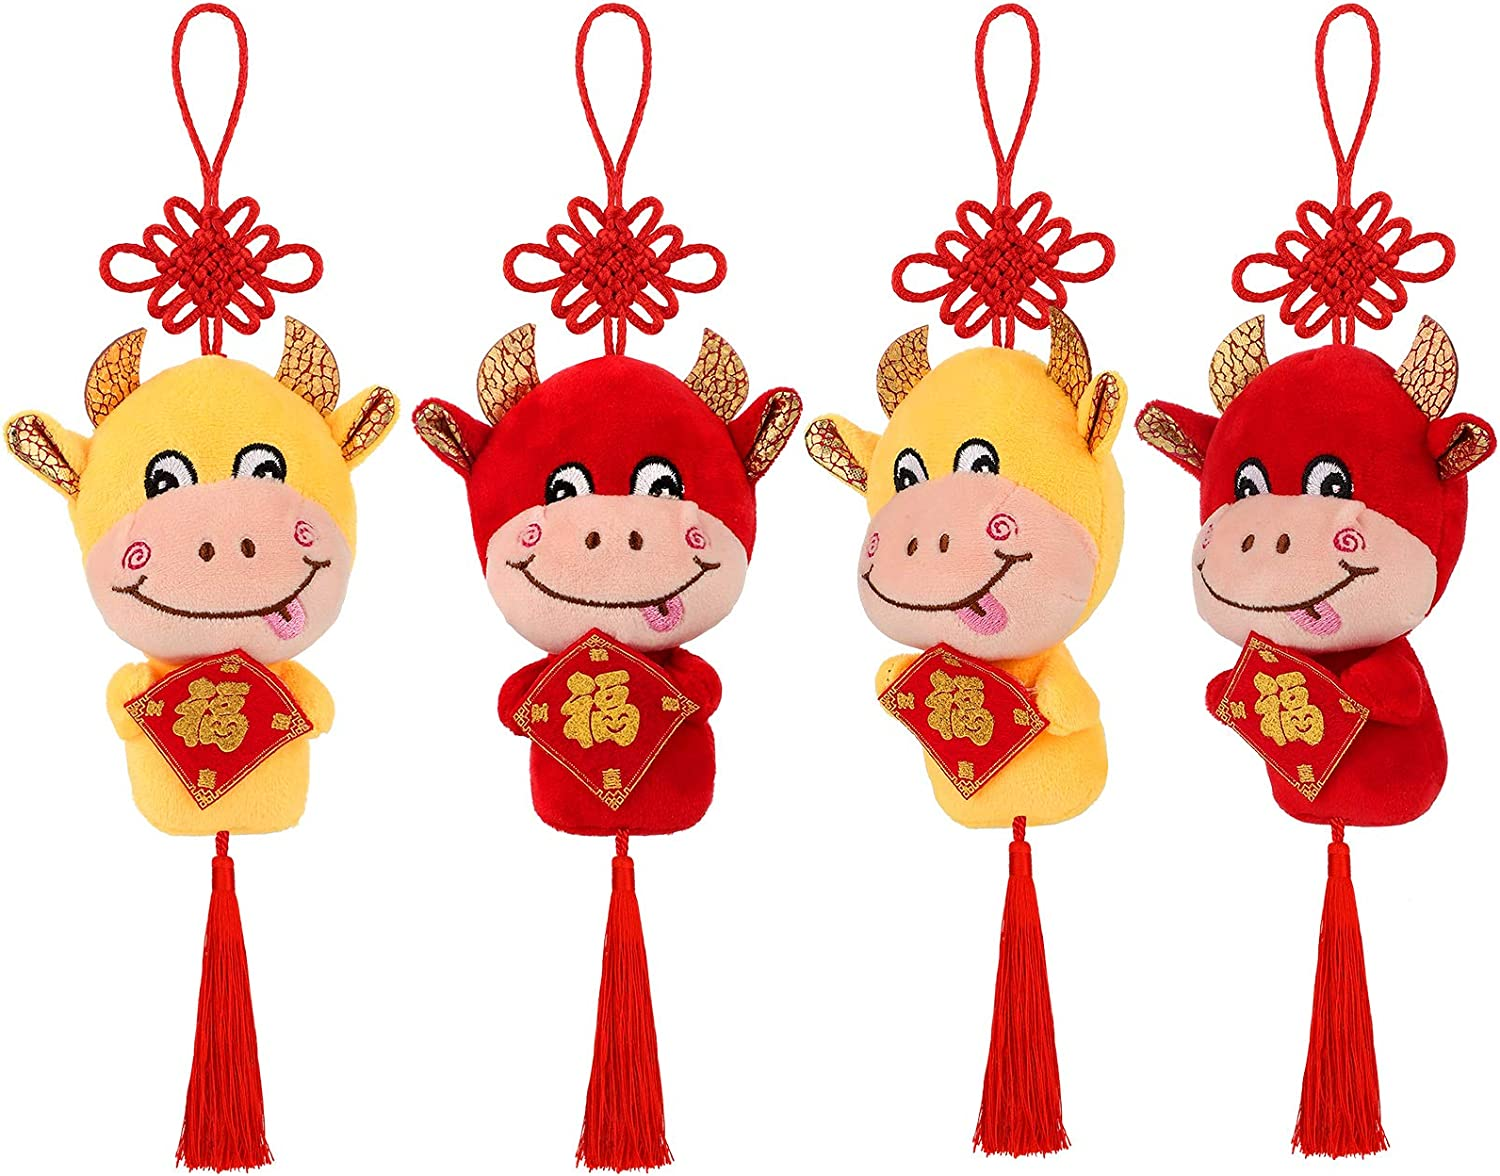 Skylety 4 Pieces 2021 Chinese New Year Ox Ornament, Good Luck Red Cattle Plush Lucky Cow Decorations Chinese New Year Zodiac Animals Mascot Toys Cattle Party Decorations